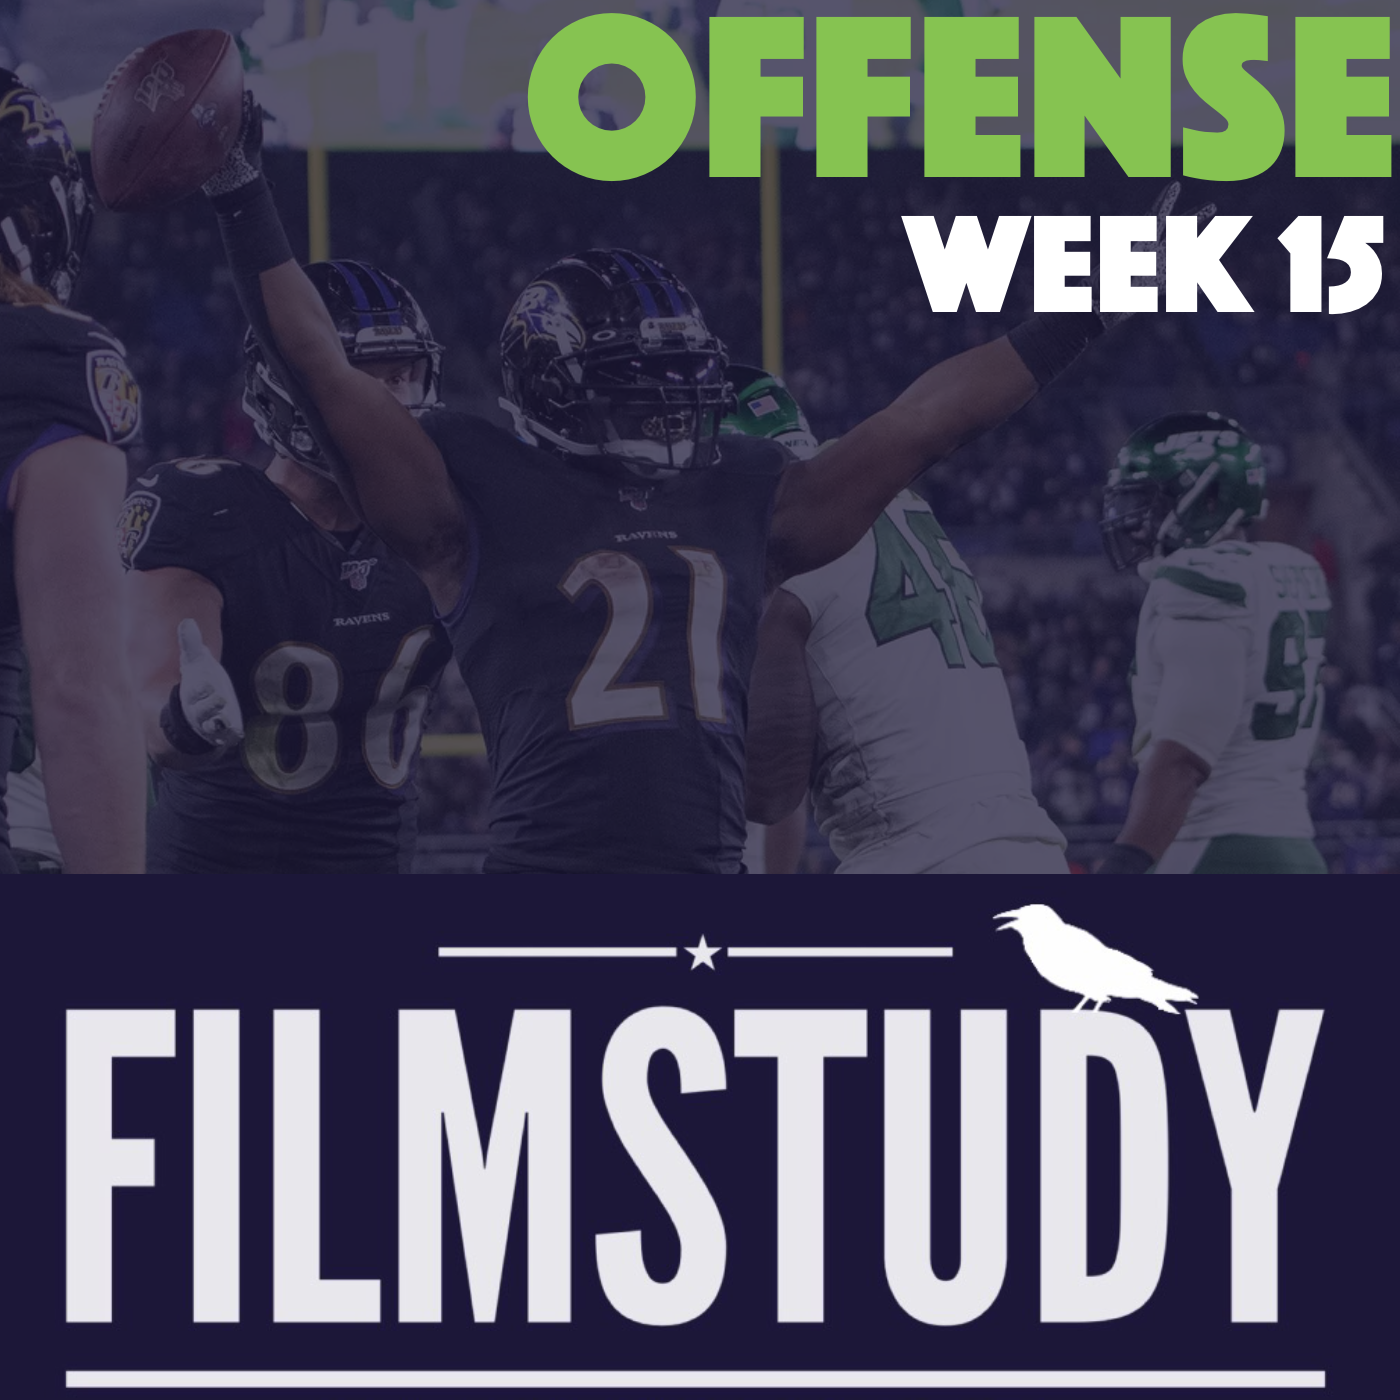 Offense Notes – Week 15 – Jets at Ravens